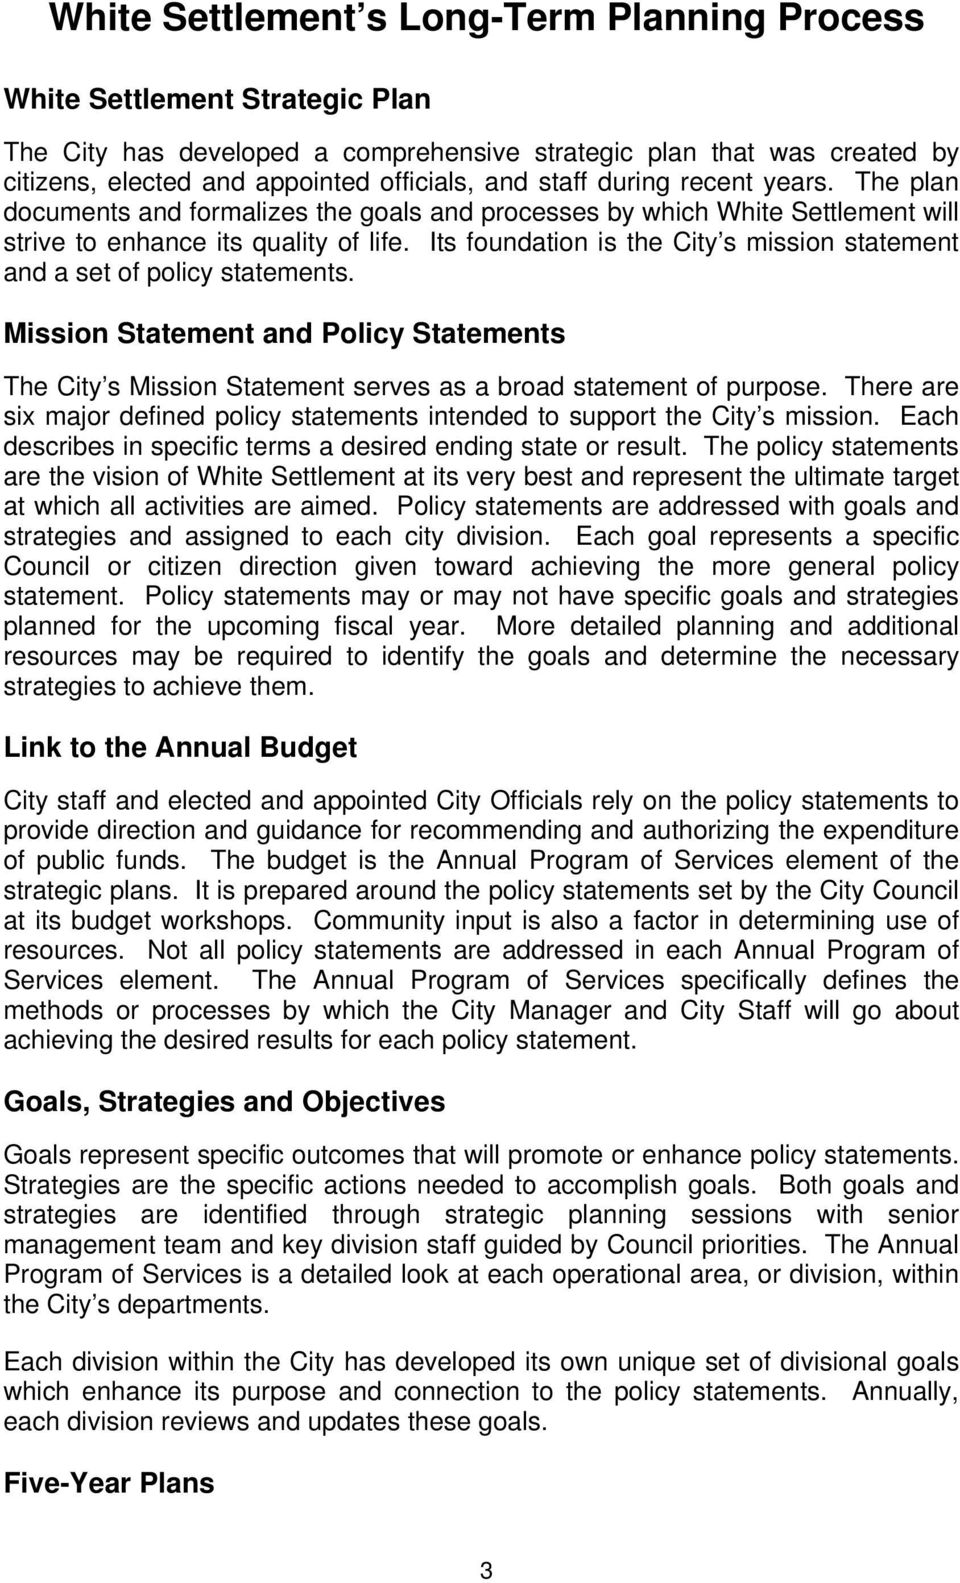 Its foundation is the City s mission statement and a set of policy statements. Mission Statement and Policy Statements The City s Mission Statement serves as a broad statement of purpose.